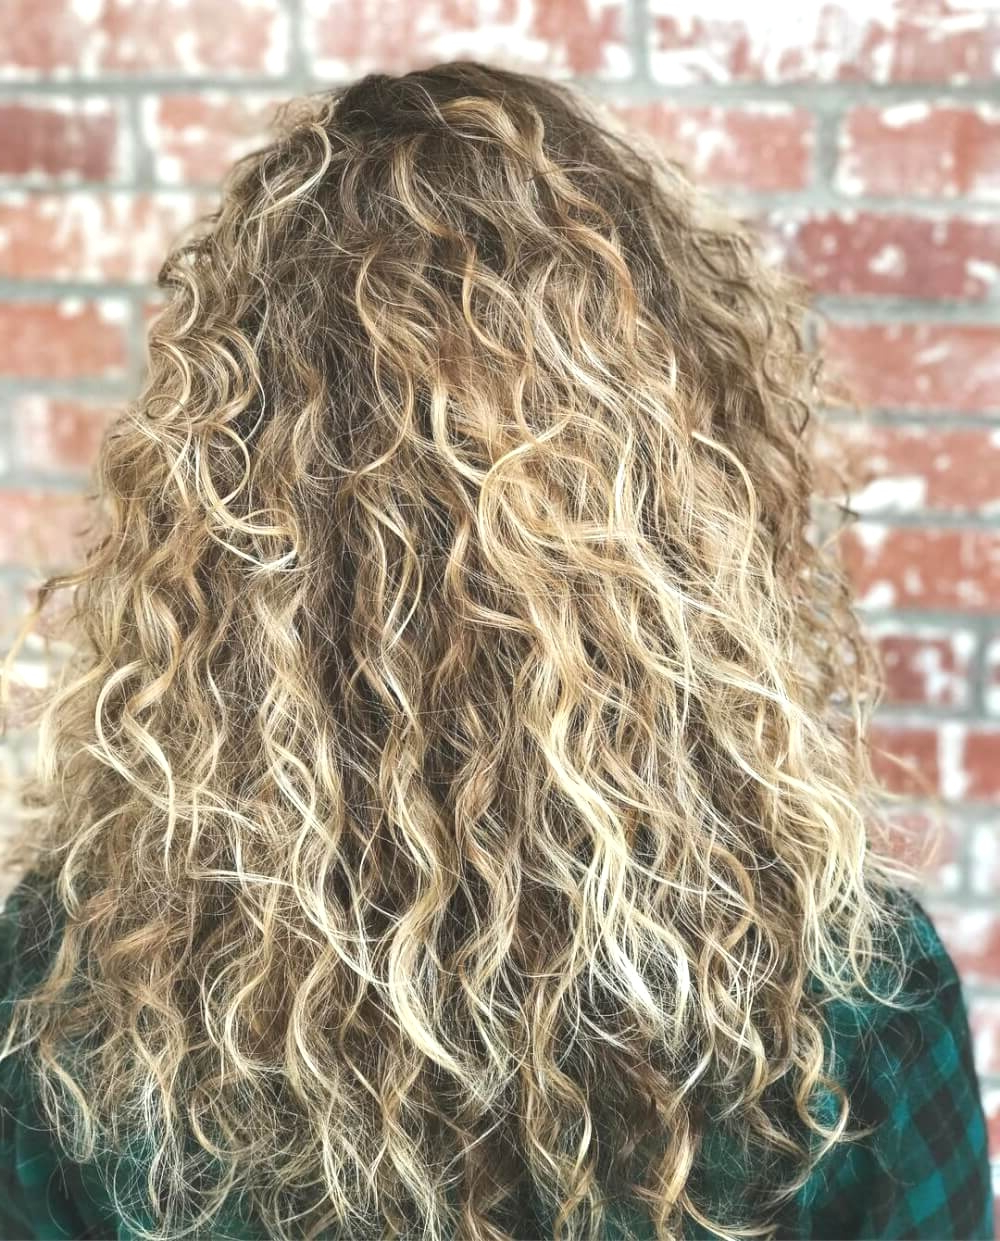 Hairstyles : Curly Brown Hair With Blonde Highlights With Curls And Blonde Highlights Hairstyles (View 7 of 20)